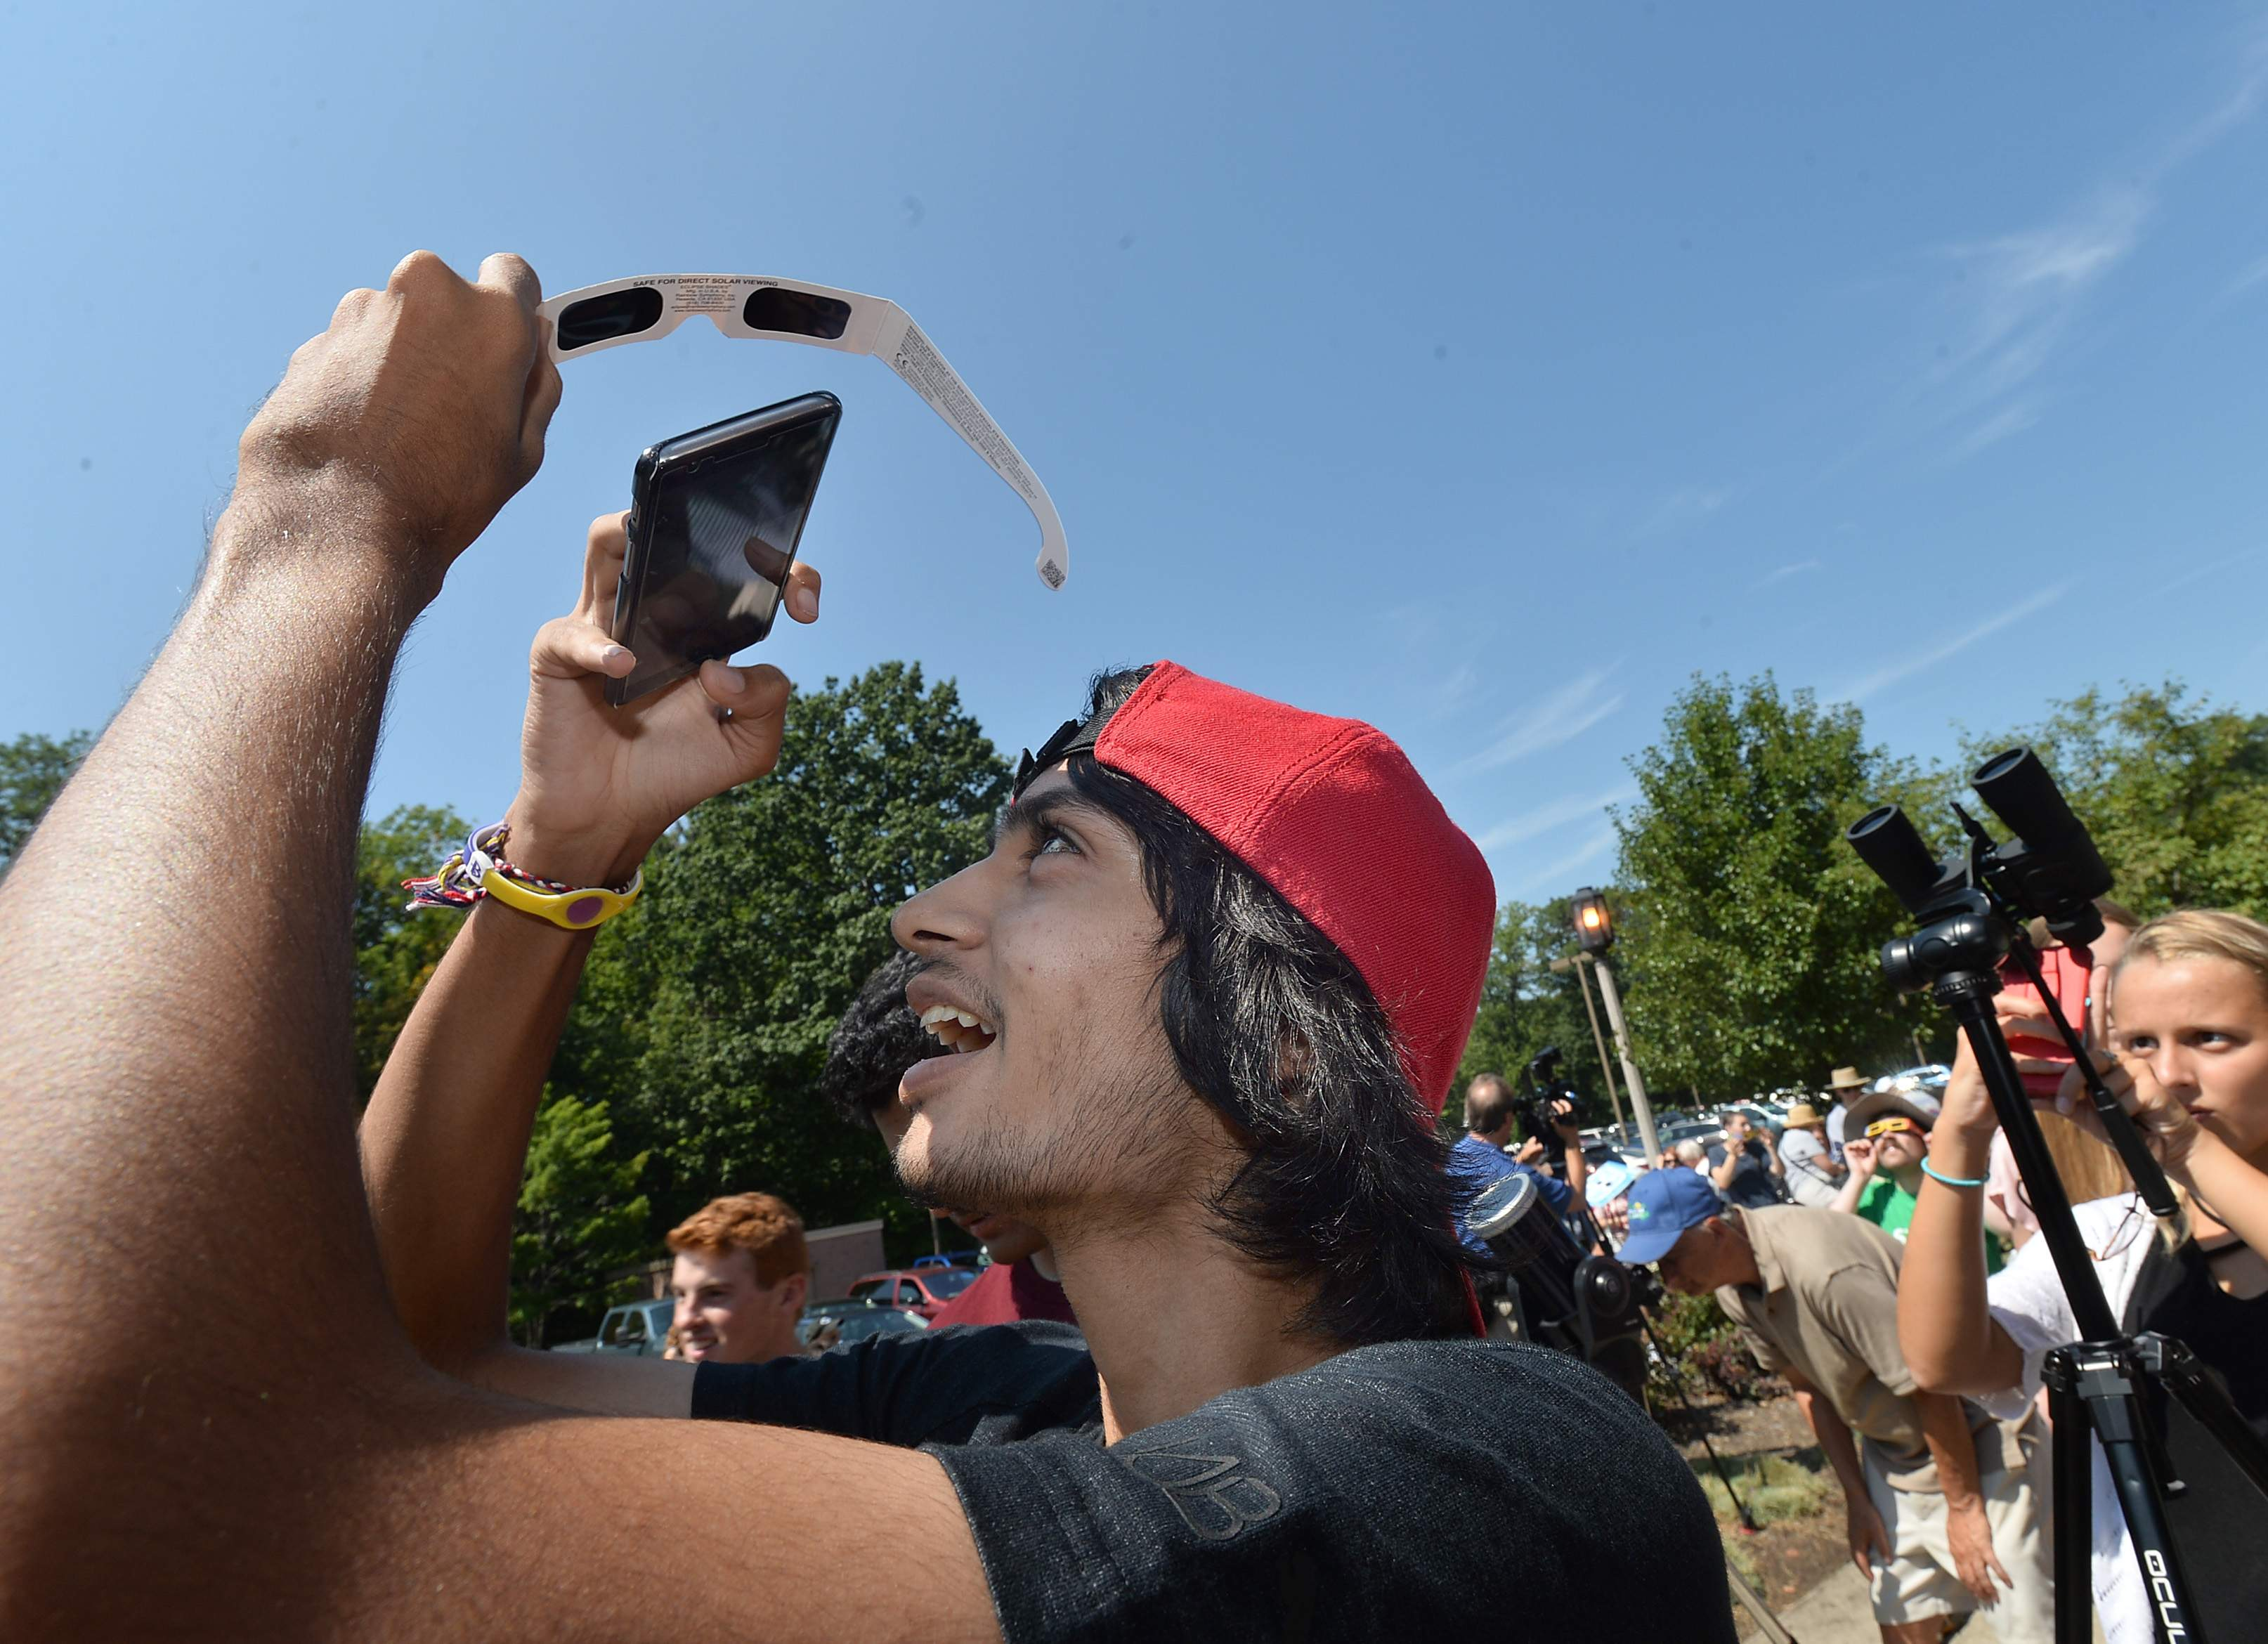 Swaraj Patel, 18, takes a photo of the eclipse on his smartphone through a pair of solar glasses Aug. 21 at an eclipse-viewing party held at Penn State Behrend in Harborcreek Township. Patel is a sophomore computer engineering student from India. Hundreds turned out for the event at Behrend, which featured telescopes fitted with solar filters available for viewing the partial eclipse. [CHRISTOPHER MILLETTE/ERIE TIMES-NEWS]